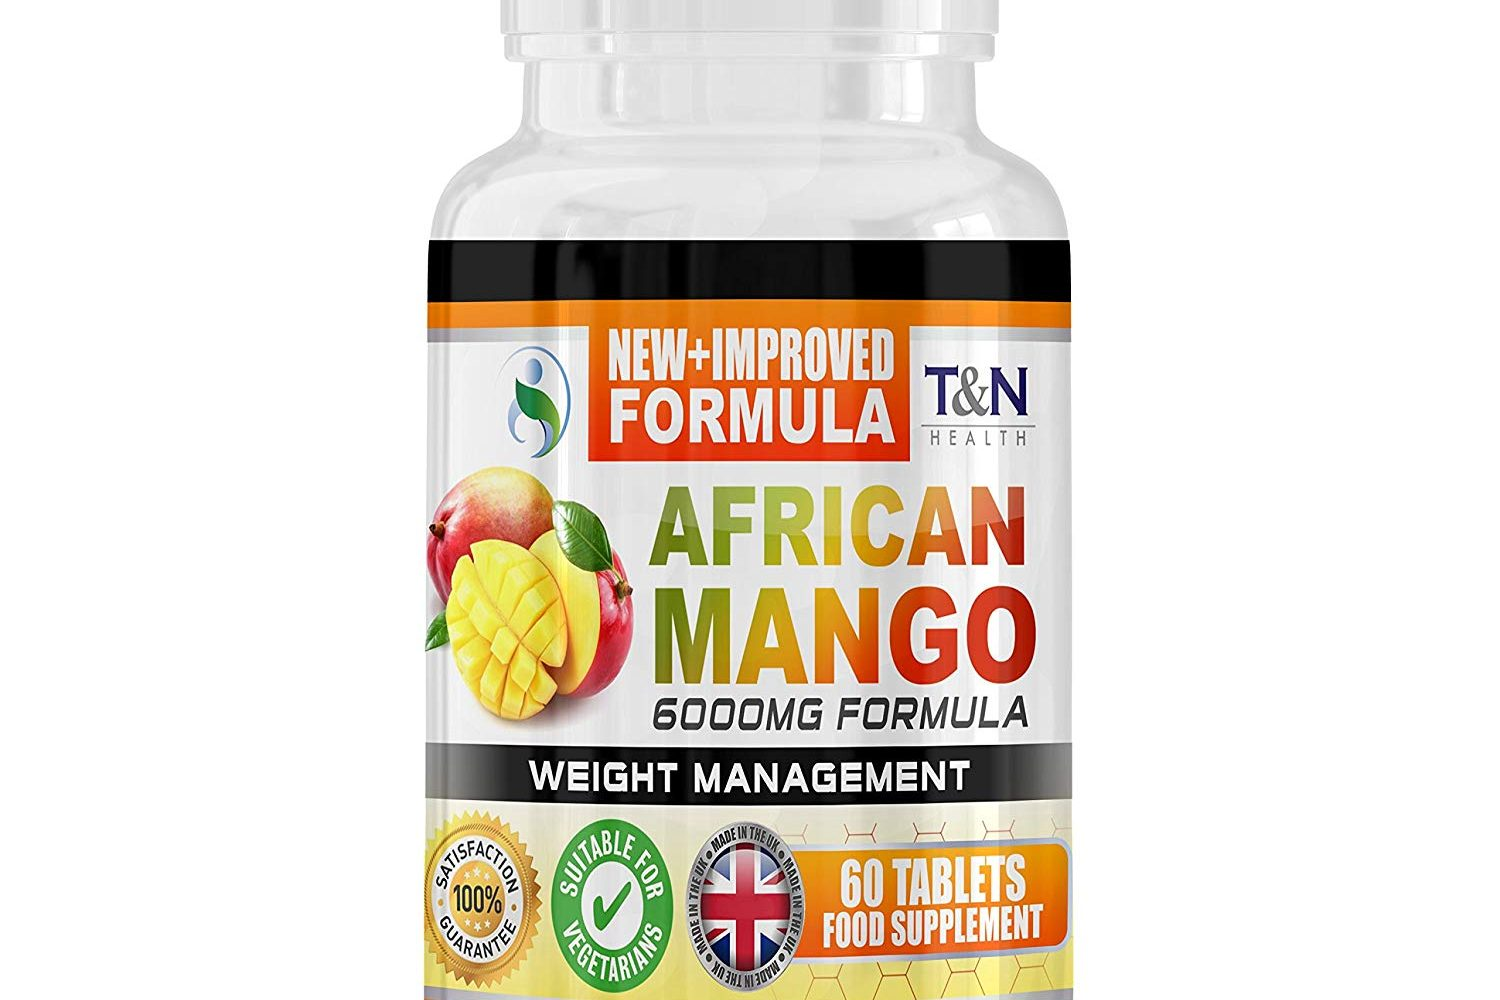 African Mango Weight Loss Benefits